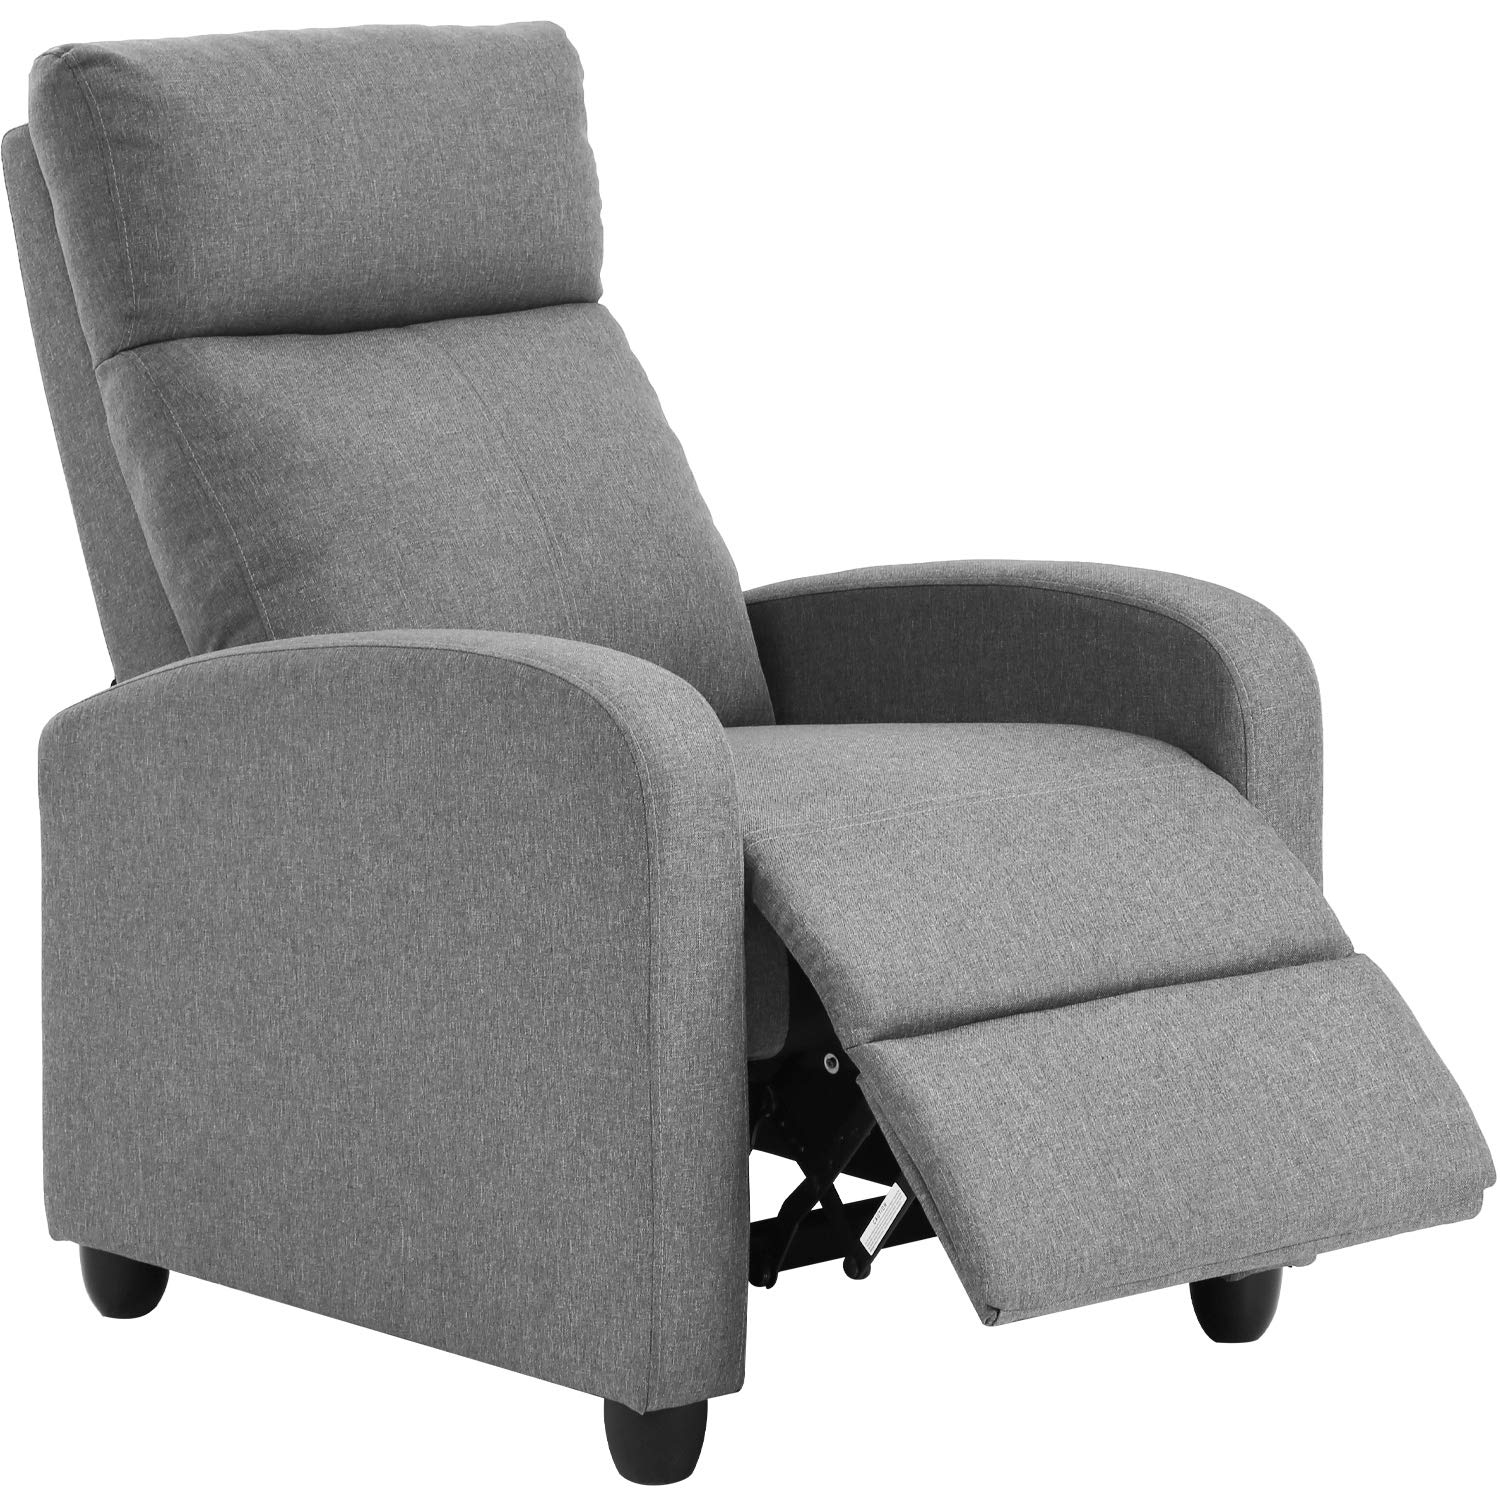 Recliner Chair for Living Room Home Theater Seating Single Reclining Sofa Lounge with Padded Seat Backrest (Grey)